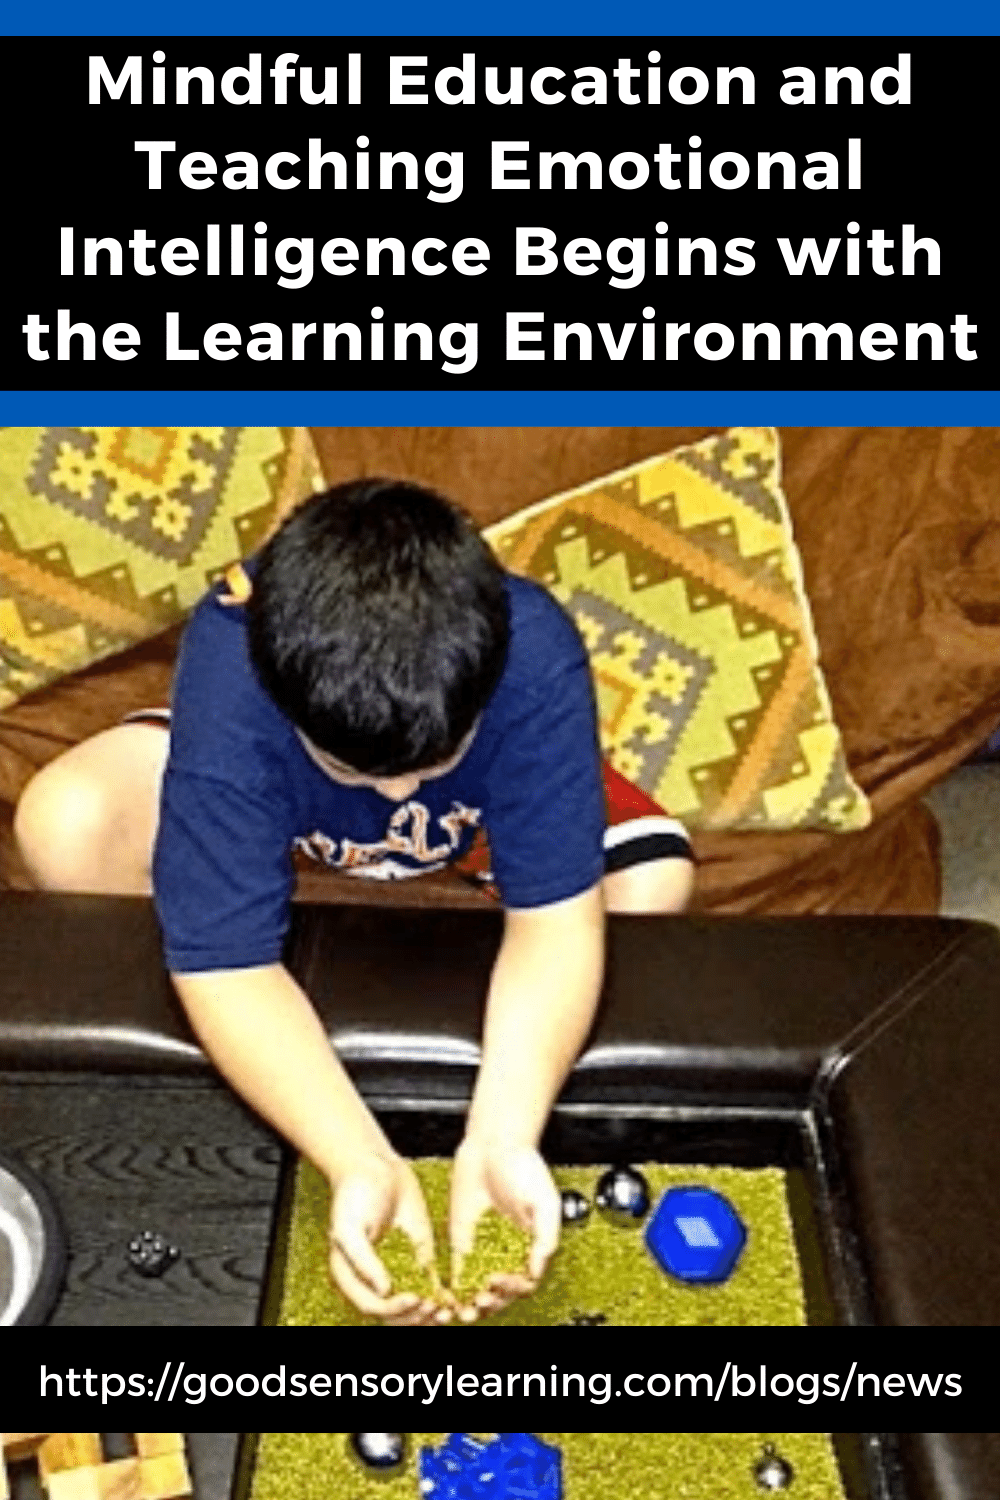 Mindful Educational Environment